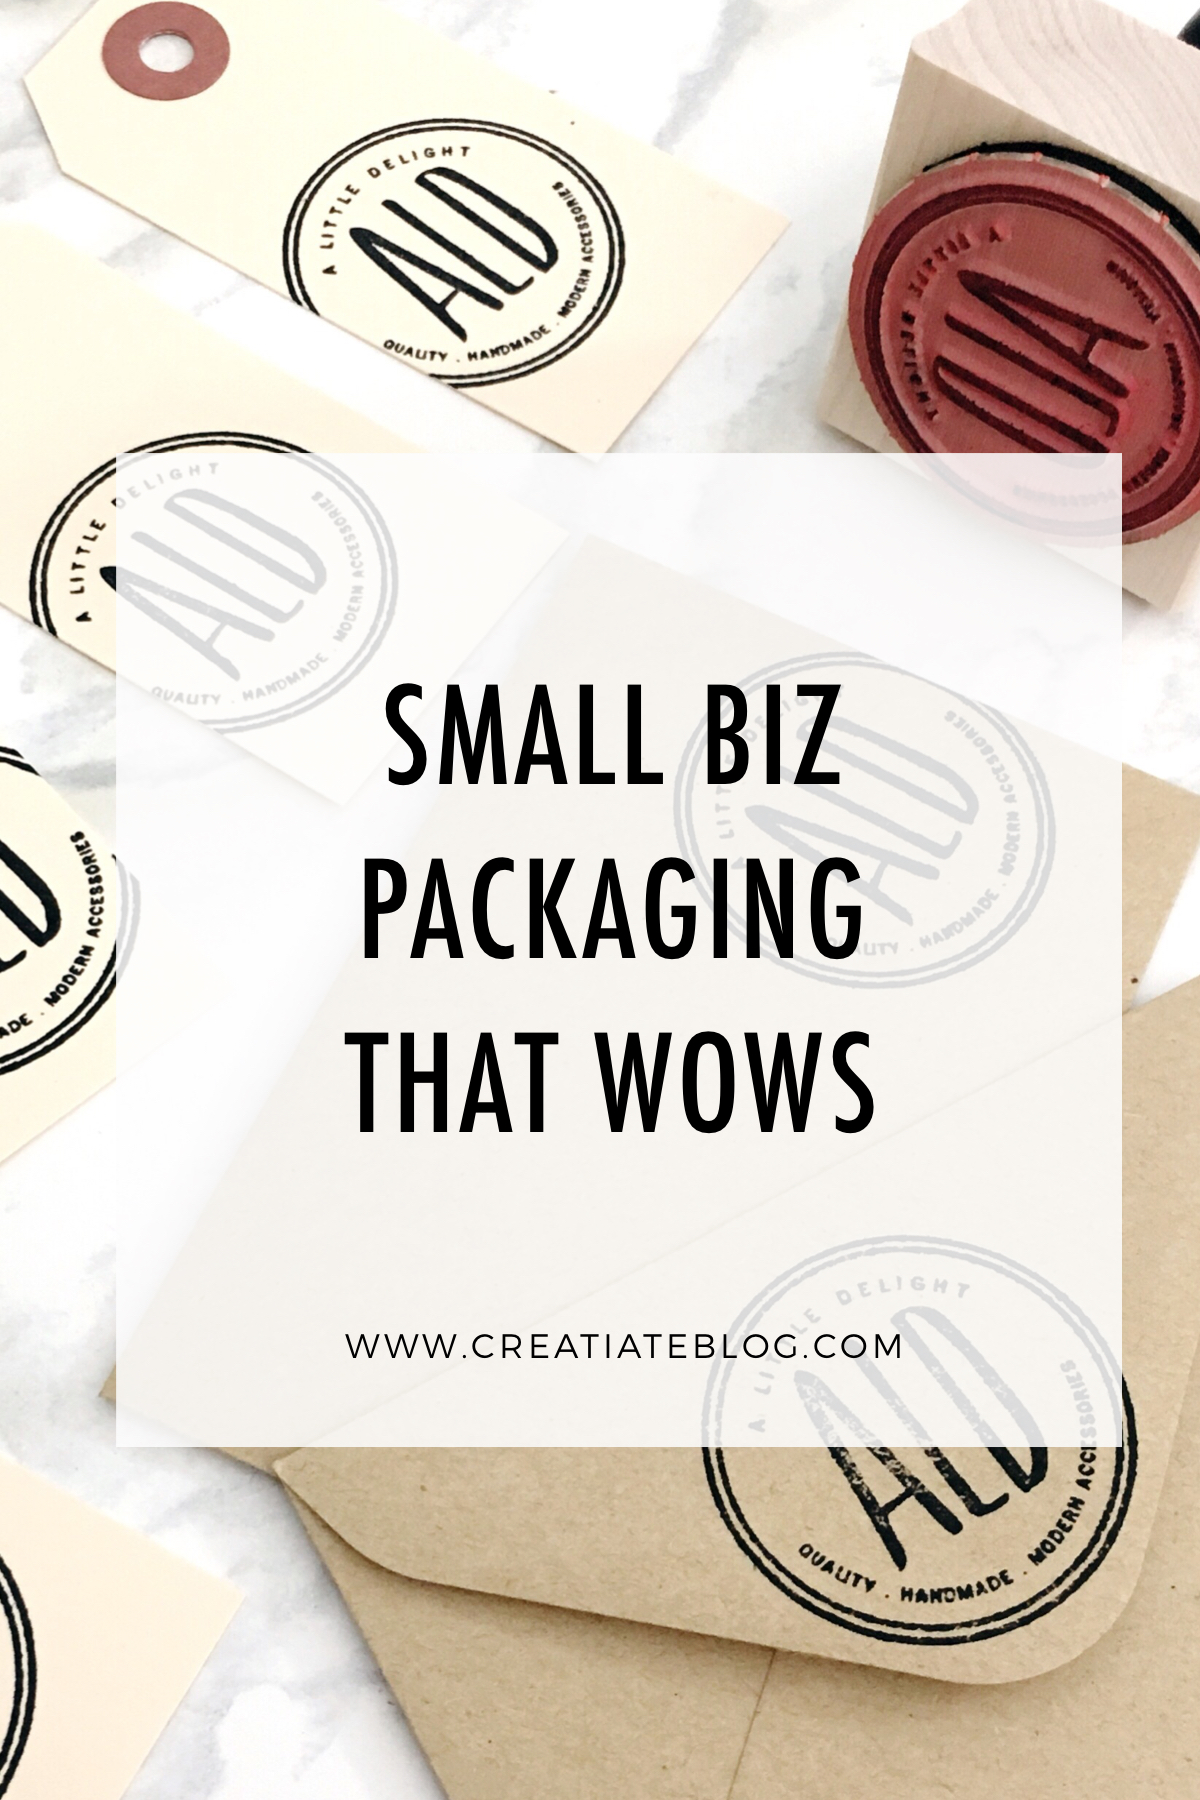 Copy of Simple + Awesome ideas for small business branding & packaging that your customers + clients will LOVE from the Creatiate blog | More at www.CreatiateBlog.com